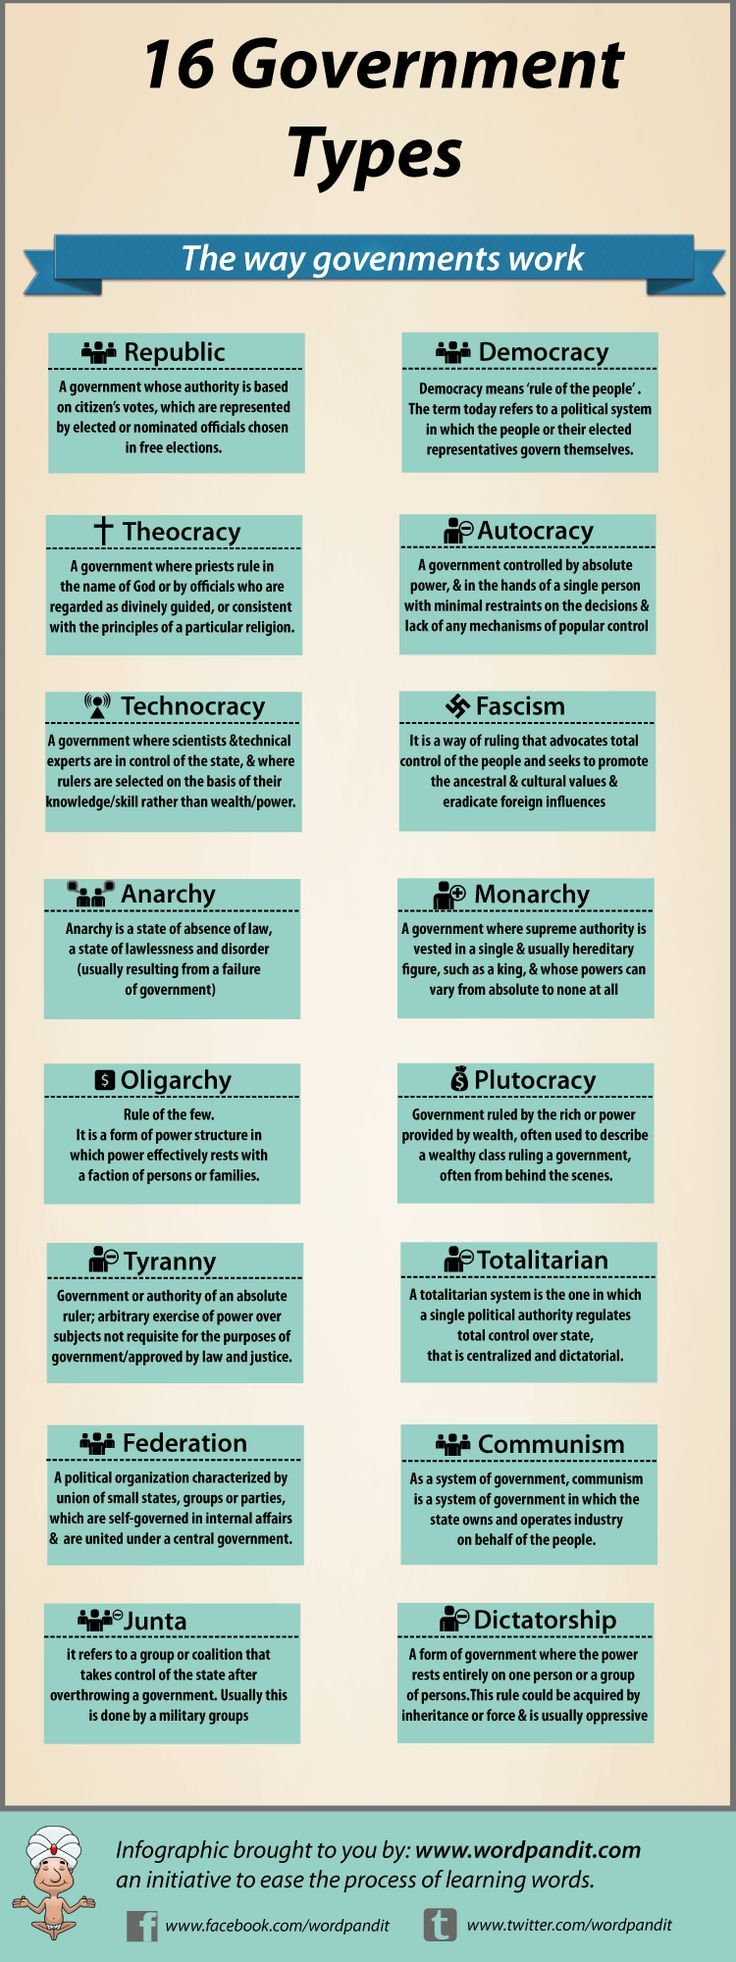 An infographic that lists the different types of governments and provides a brief description of each.